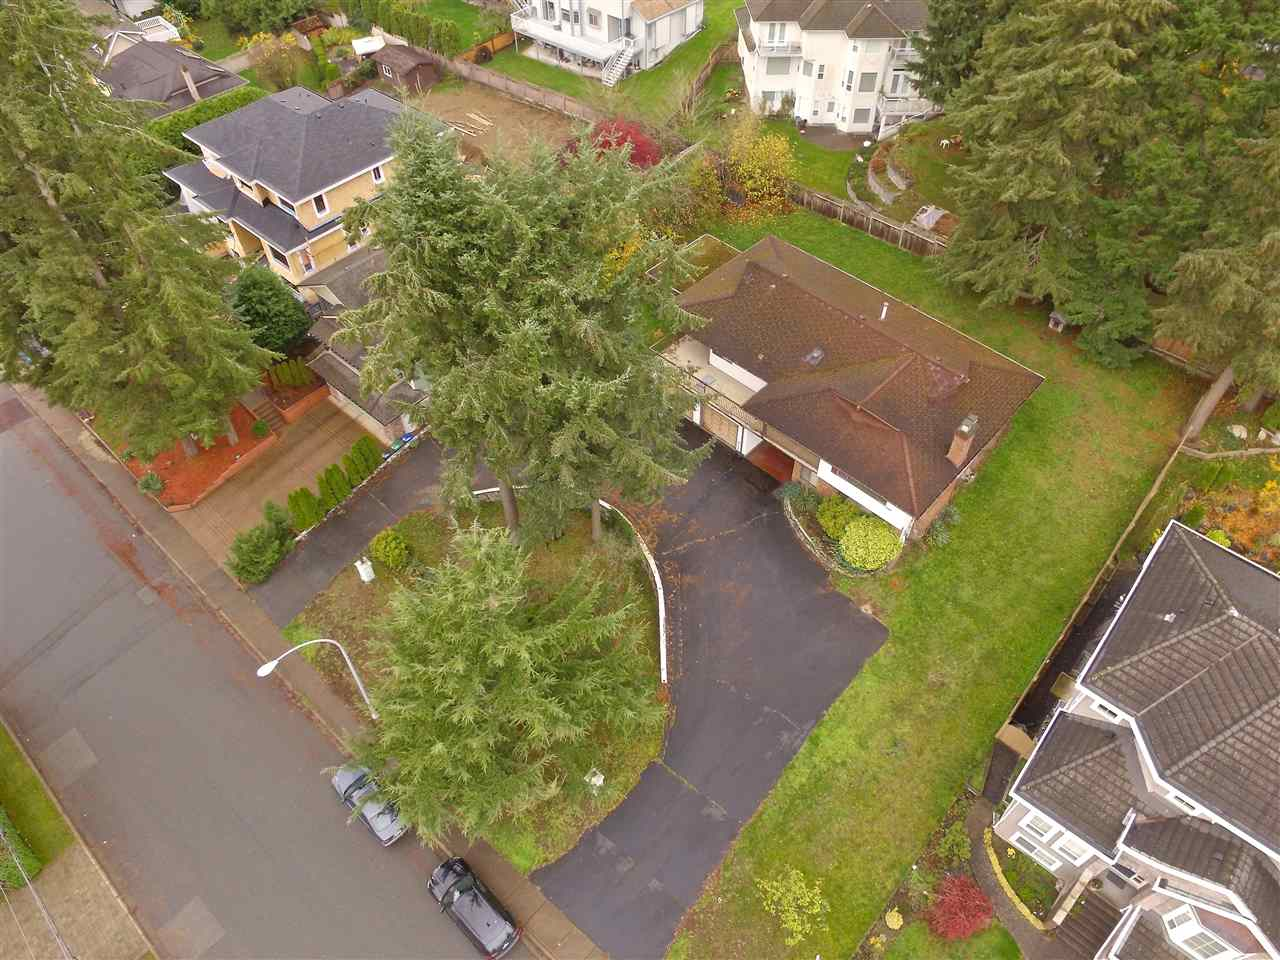 "Photo 5: 16495 78 Avenue in Surrey: Fleetwood Tynehead House for sale in ""FLEETWOOD"" : MLS® # R2122962"